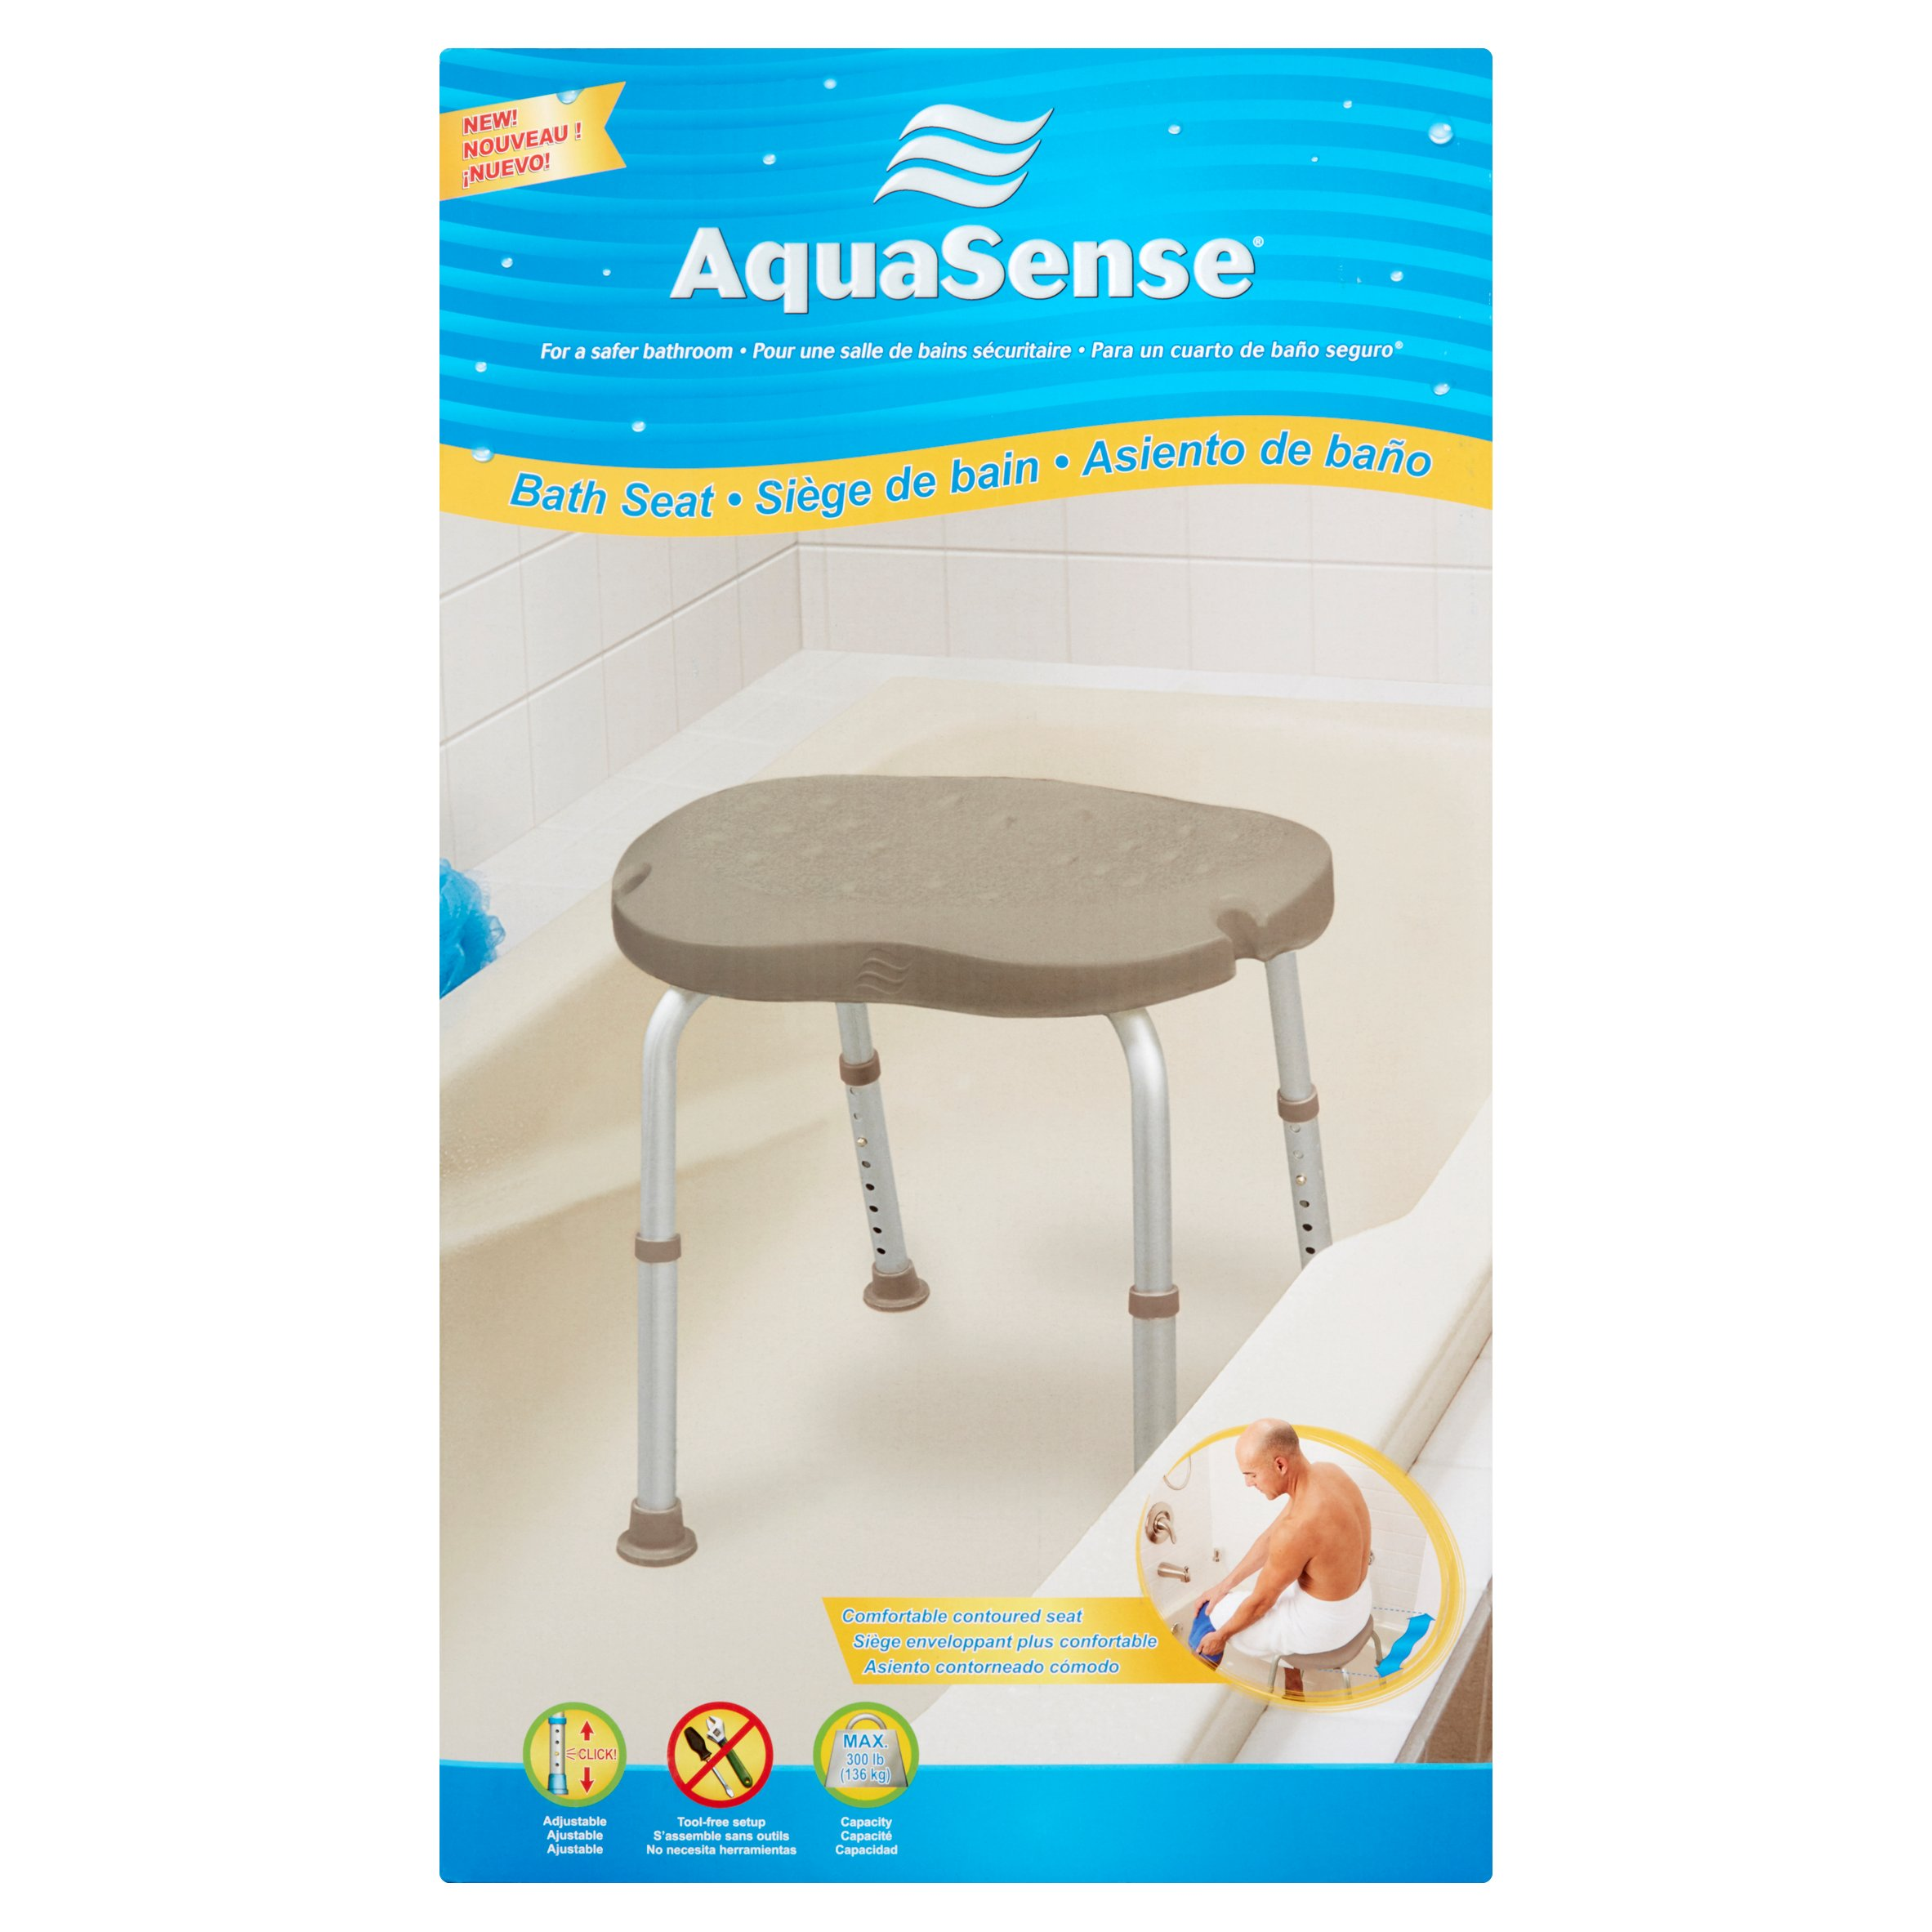 AquaSense Bath Seat